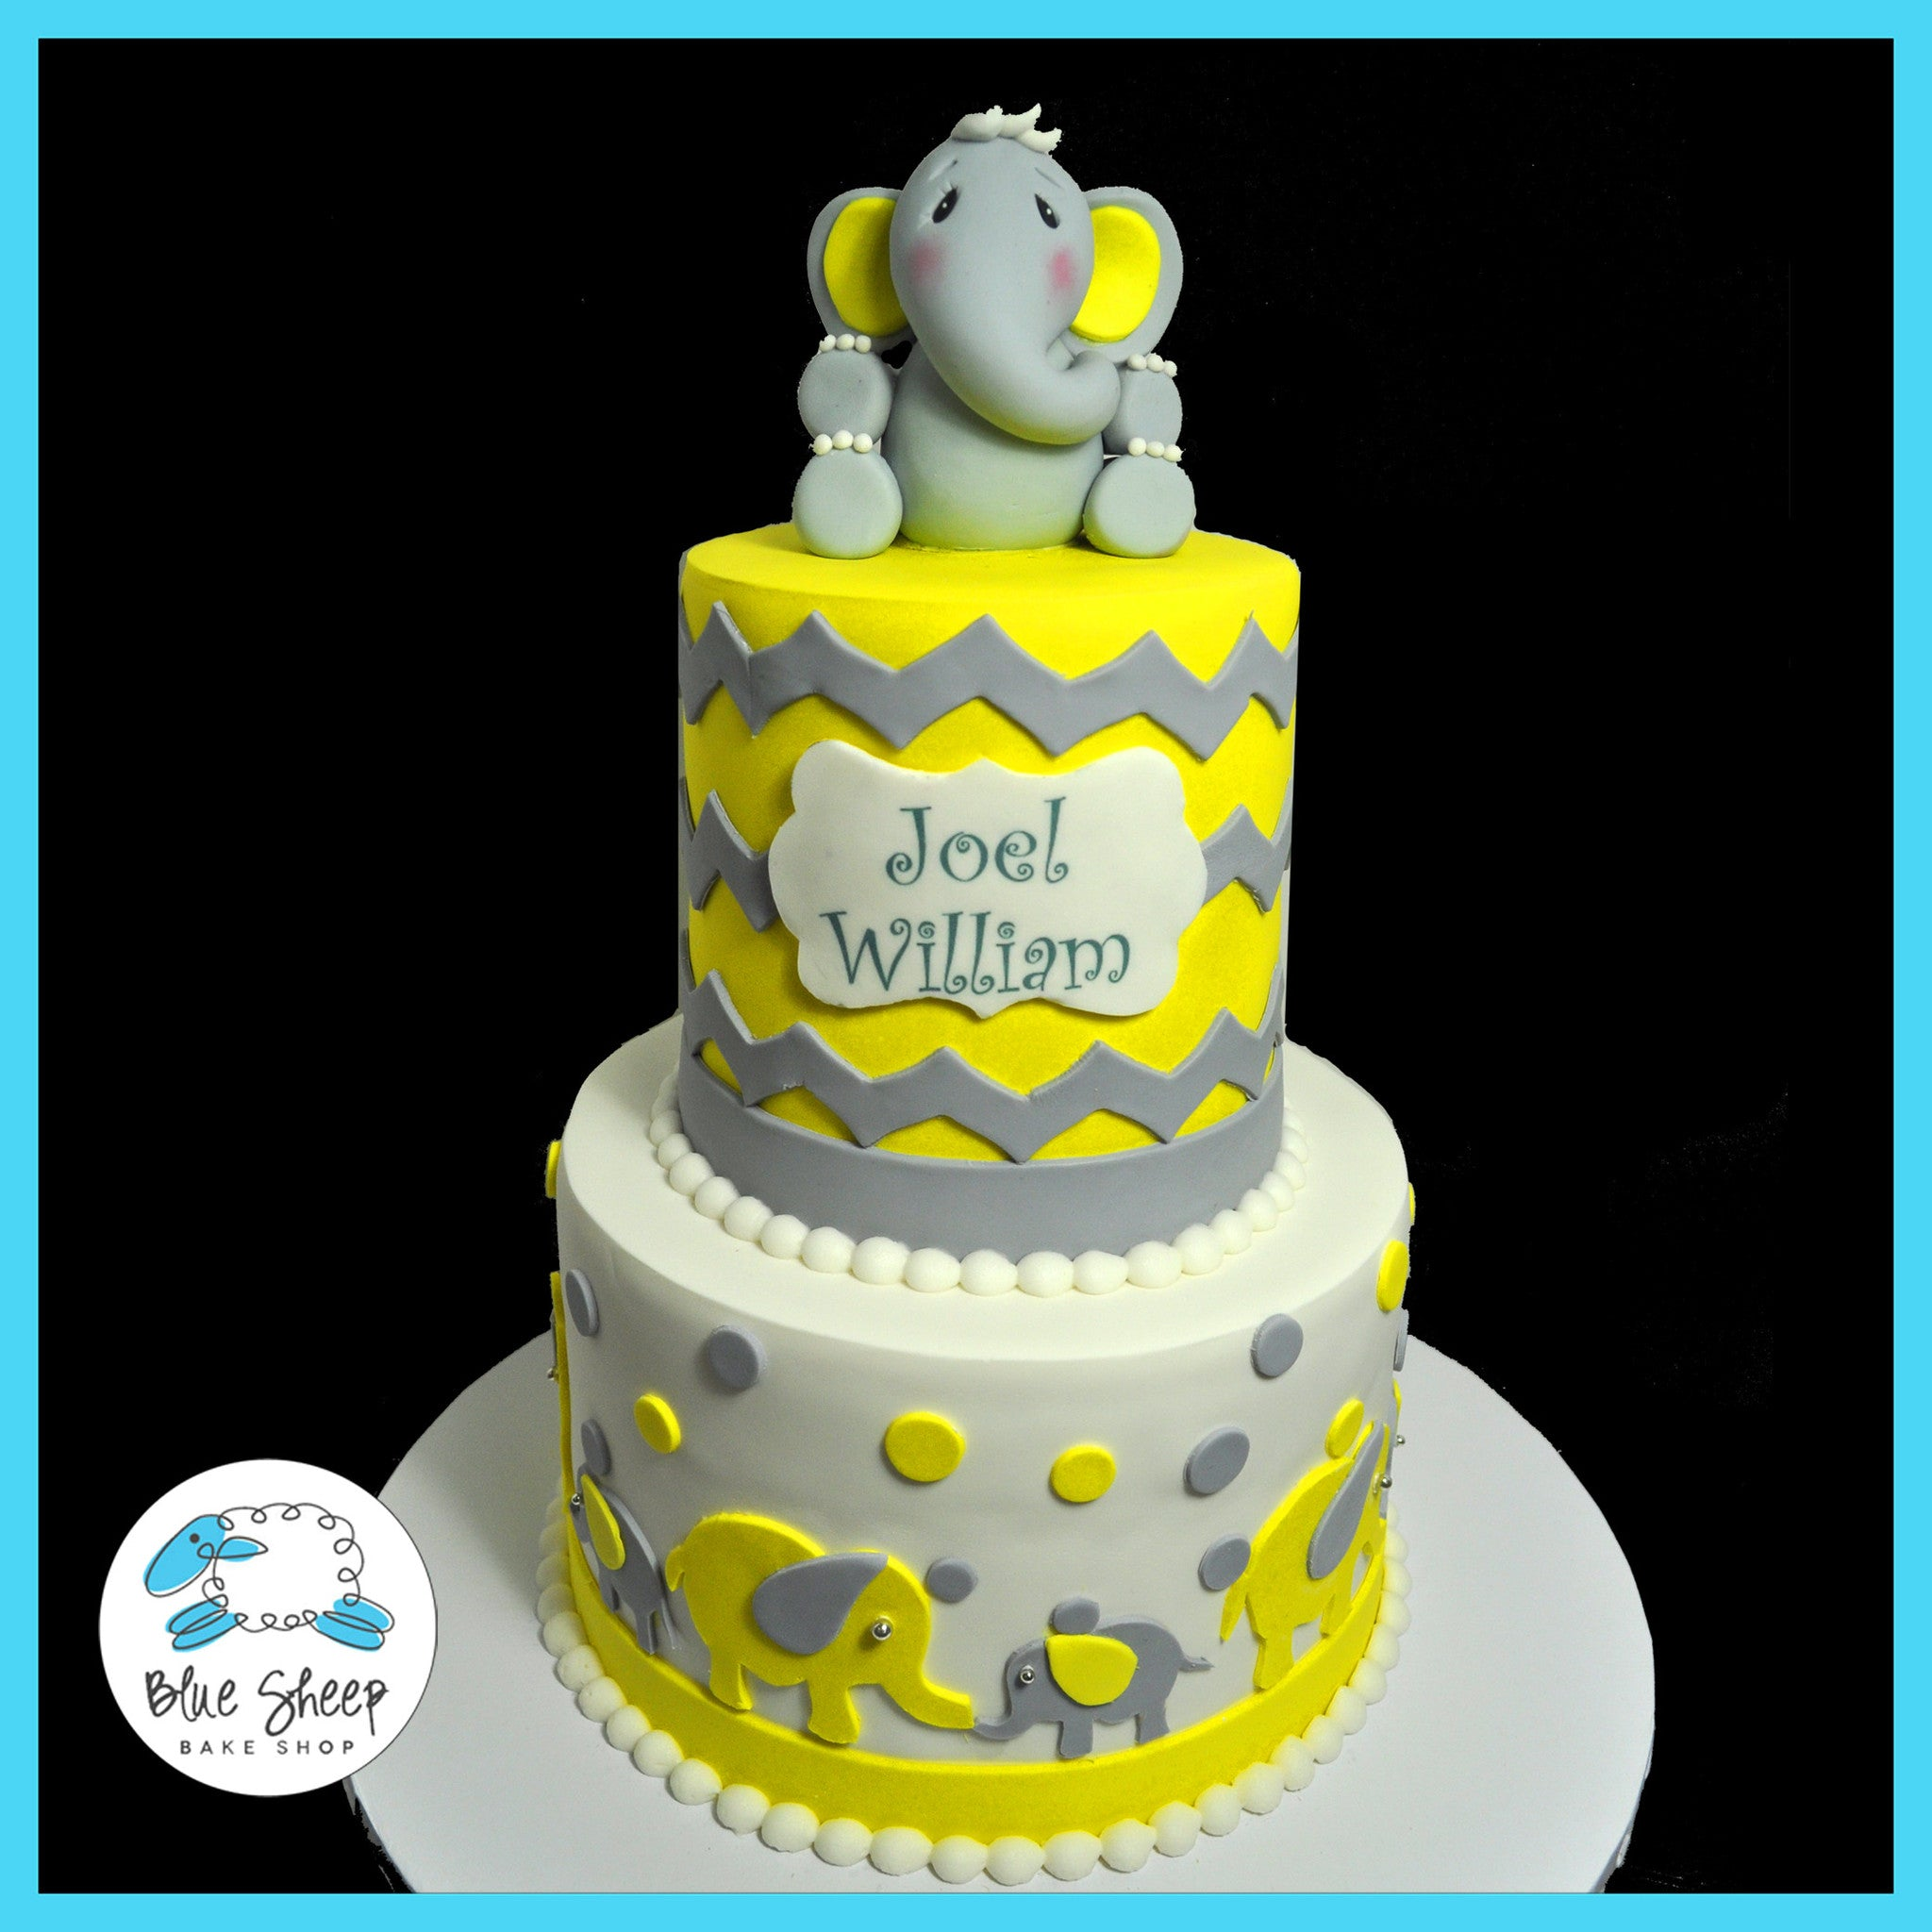 Yellow And Grey Elephant And Chevron Cake Blue Sheep Bake Shop